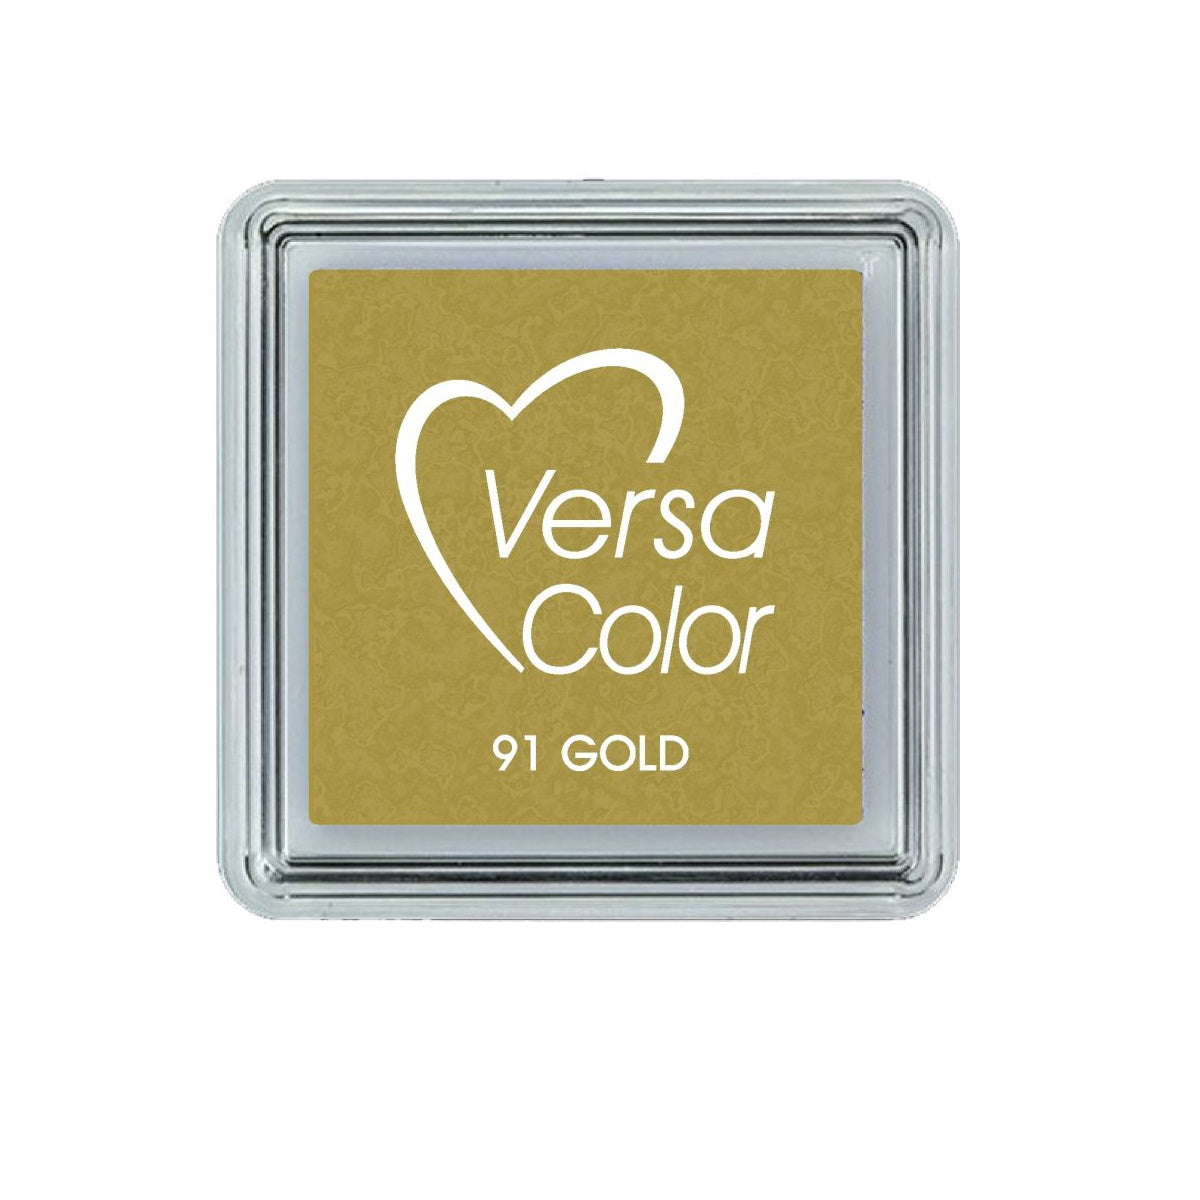 Gold Tsukineko Versacolor small metallic ink pad